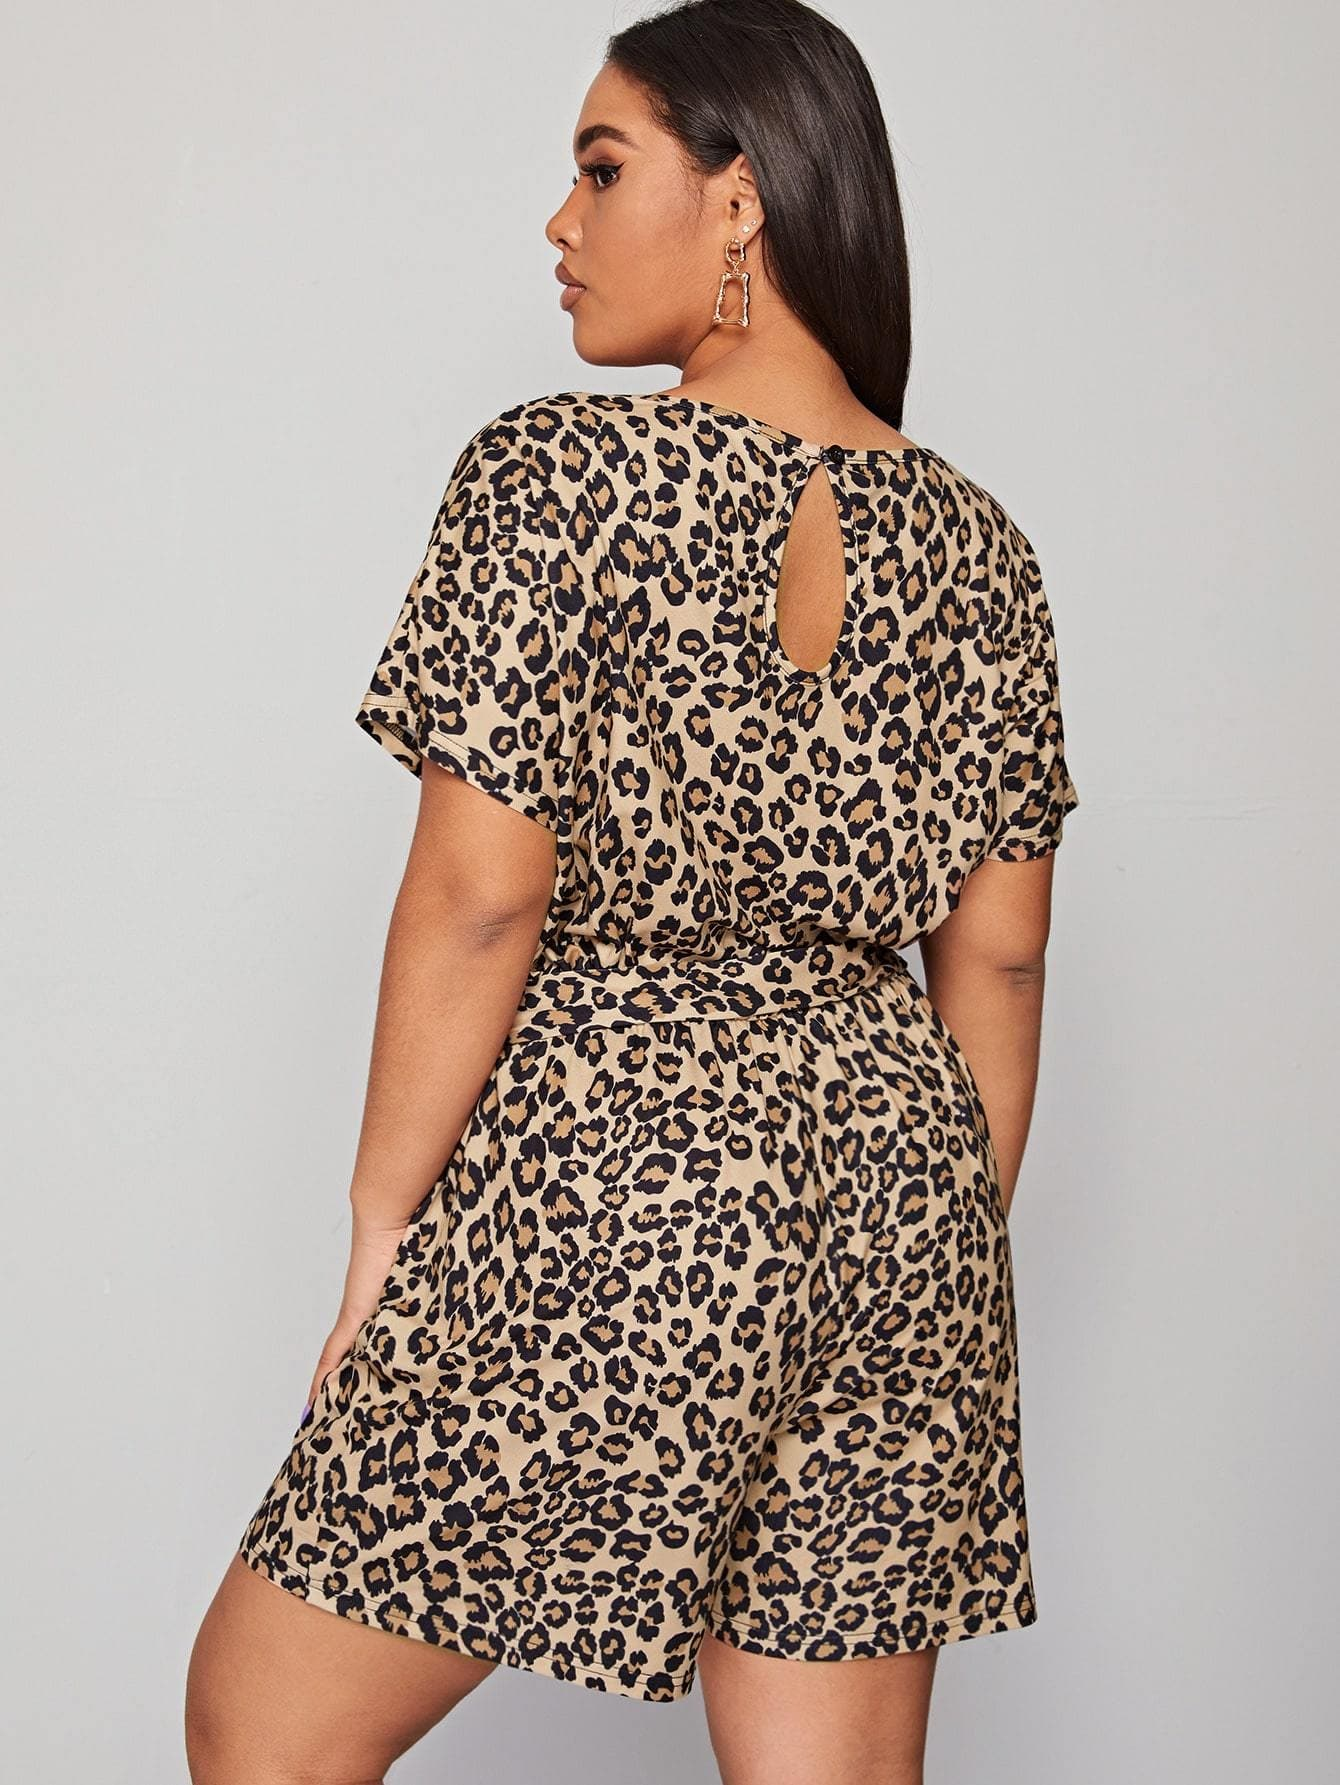 Plus Leopard Print Self Tie Romper - FLJ CORPORATIONS